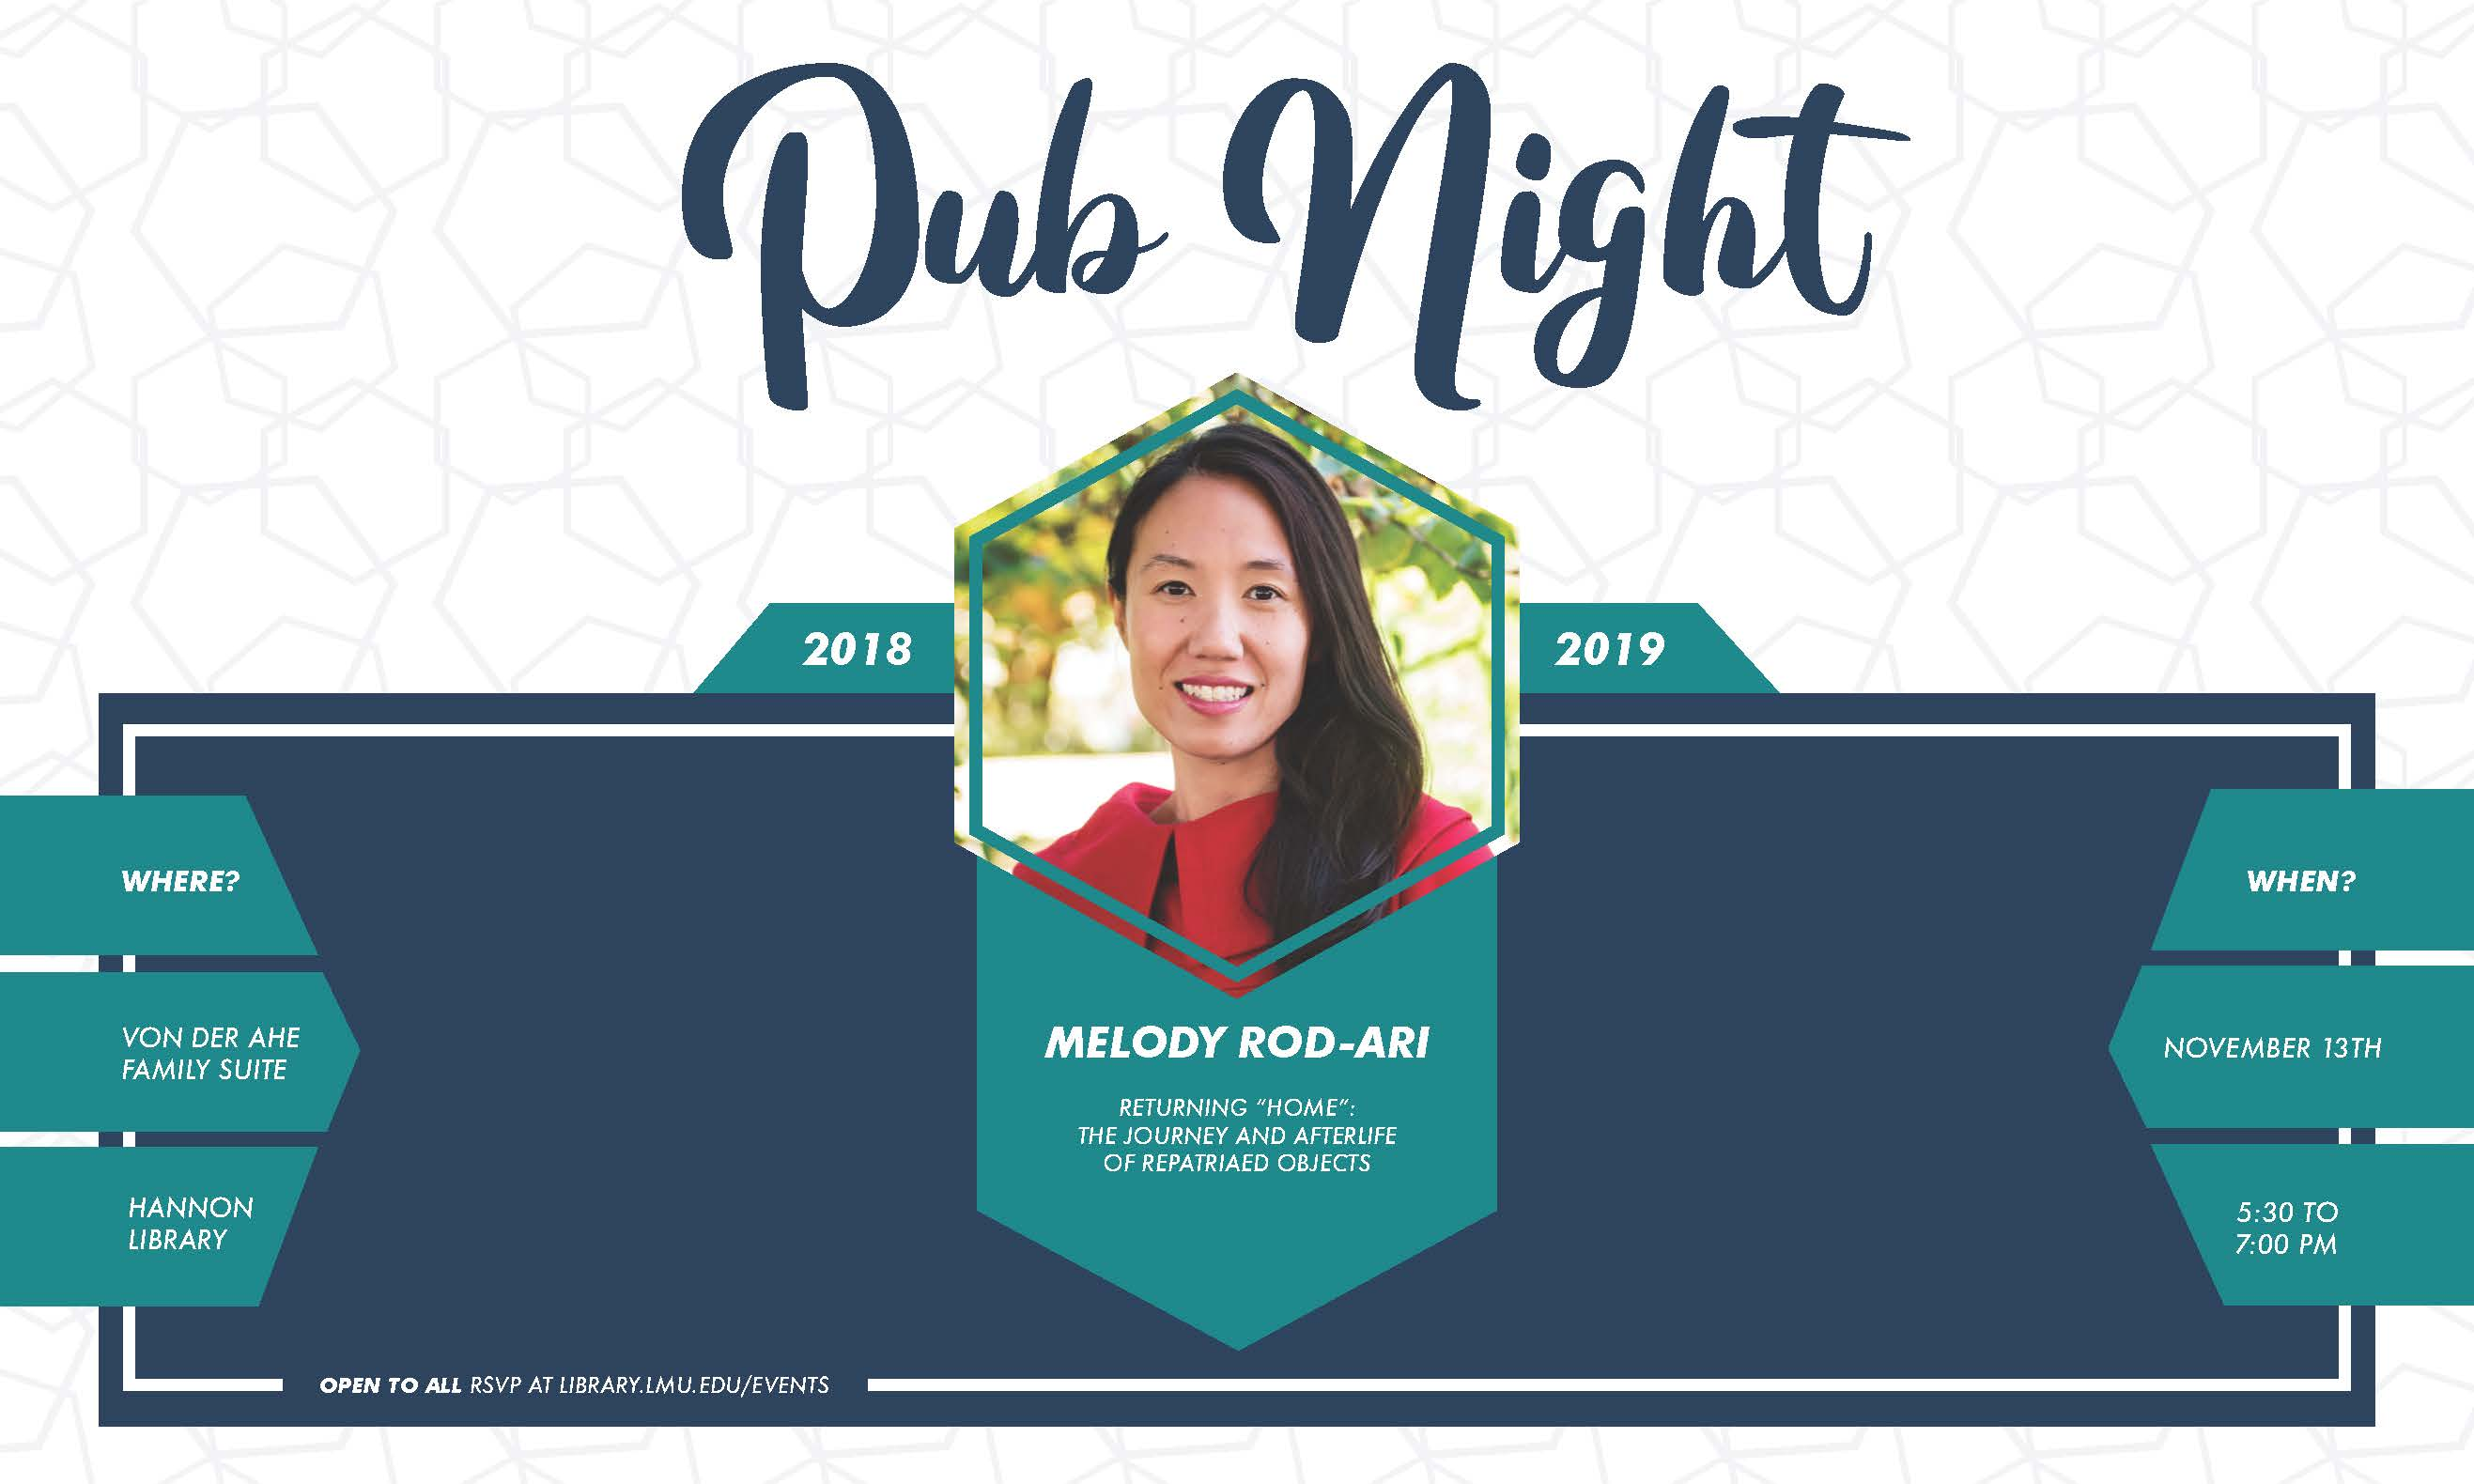 Rodari Pub Night promo